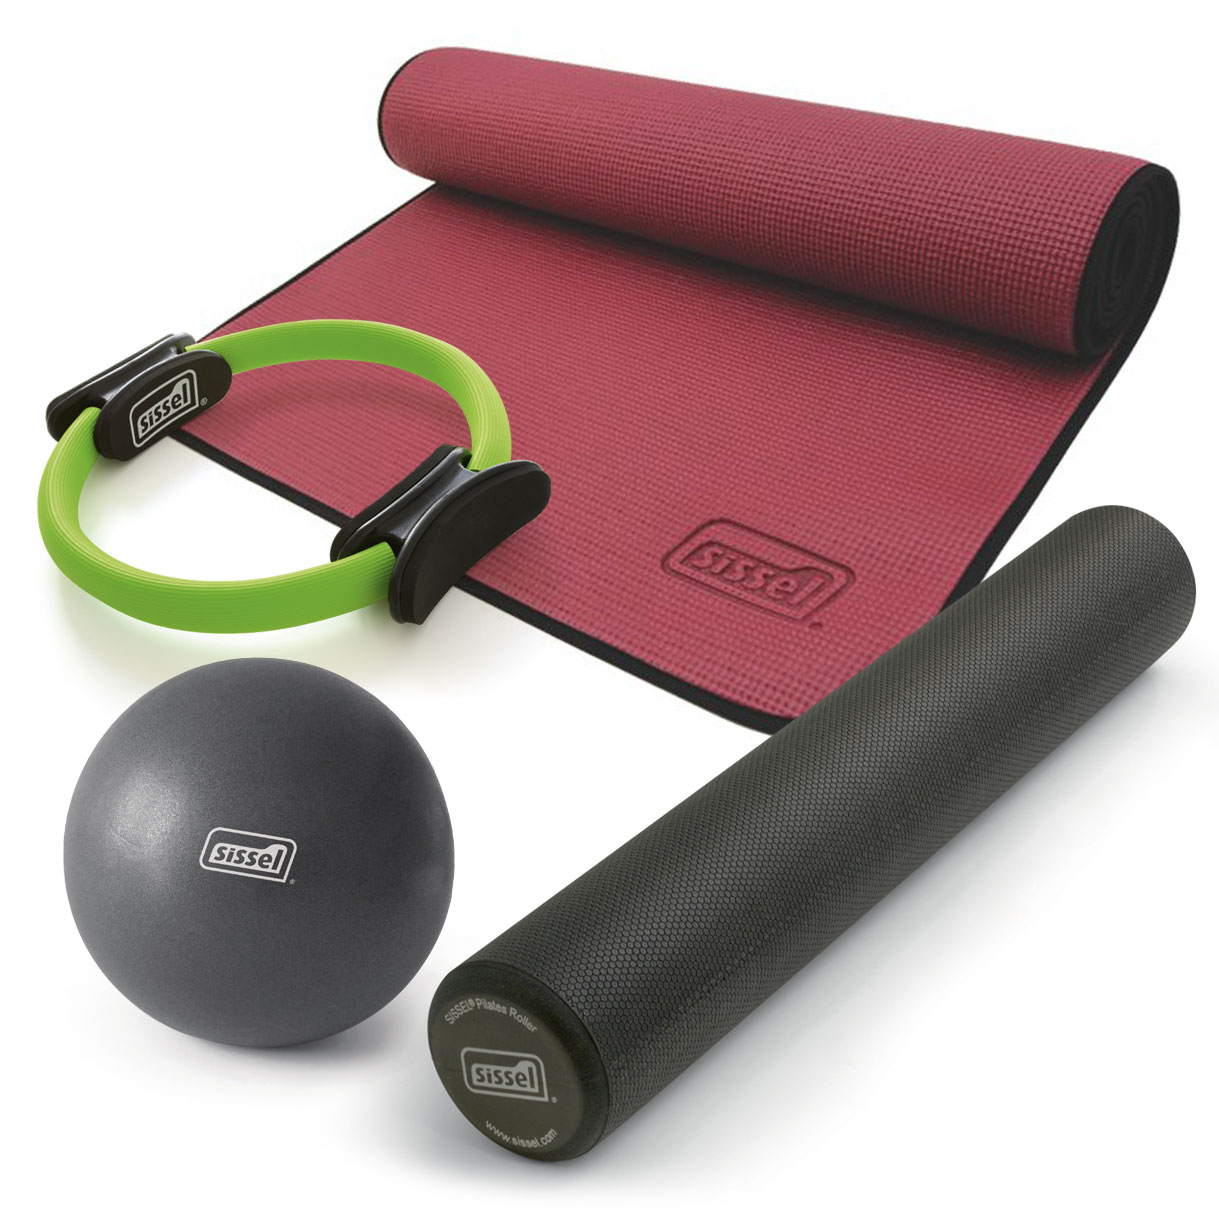 KIT PILATES CASA n°3 COMPACT: Circle, Soft Ball, Rullo e Materassino bordeaux